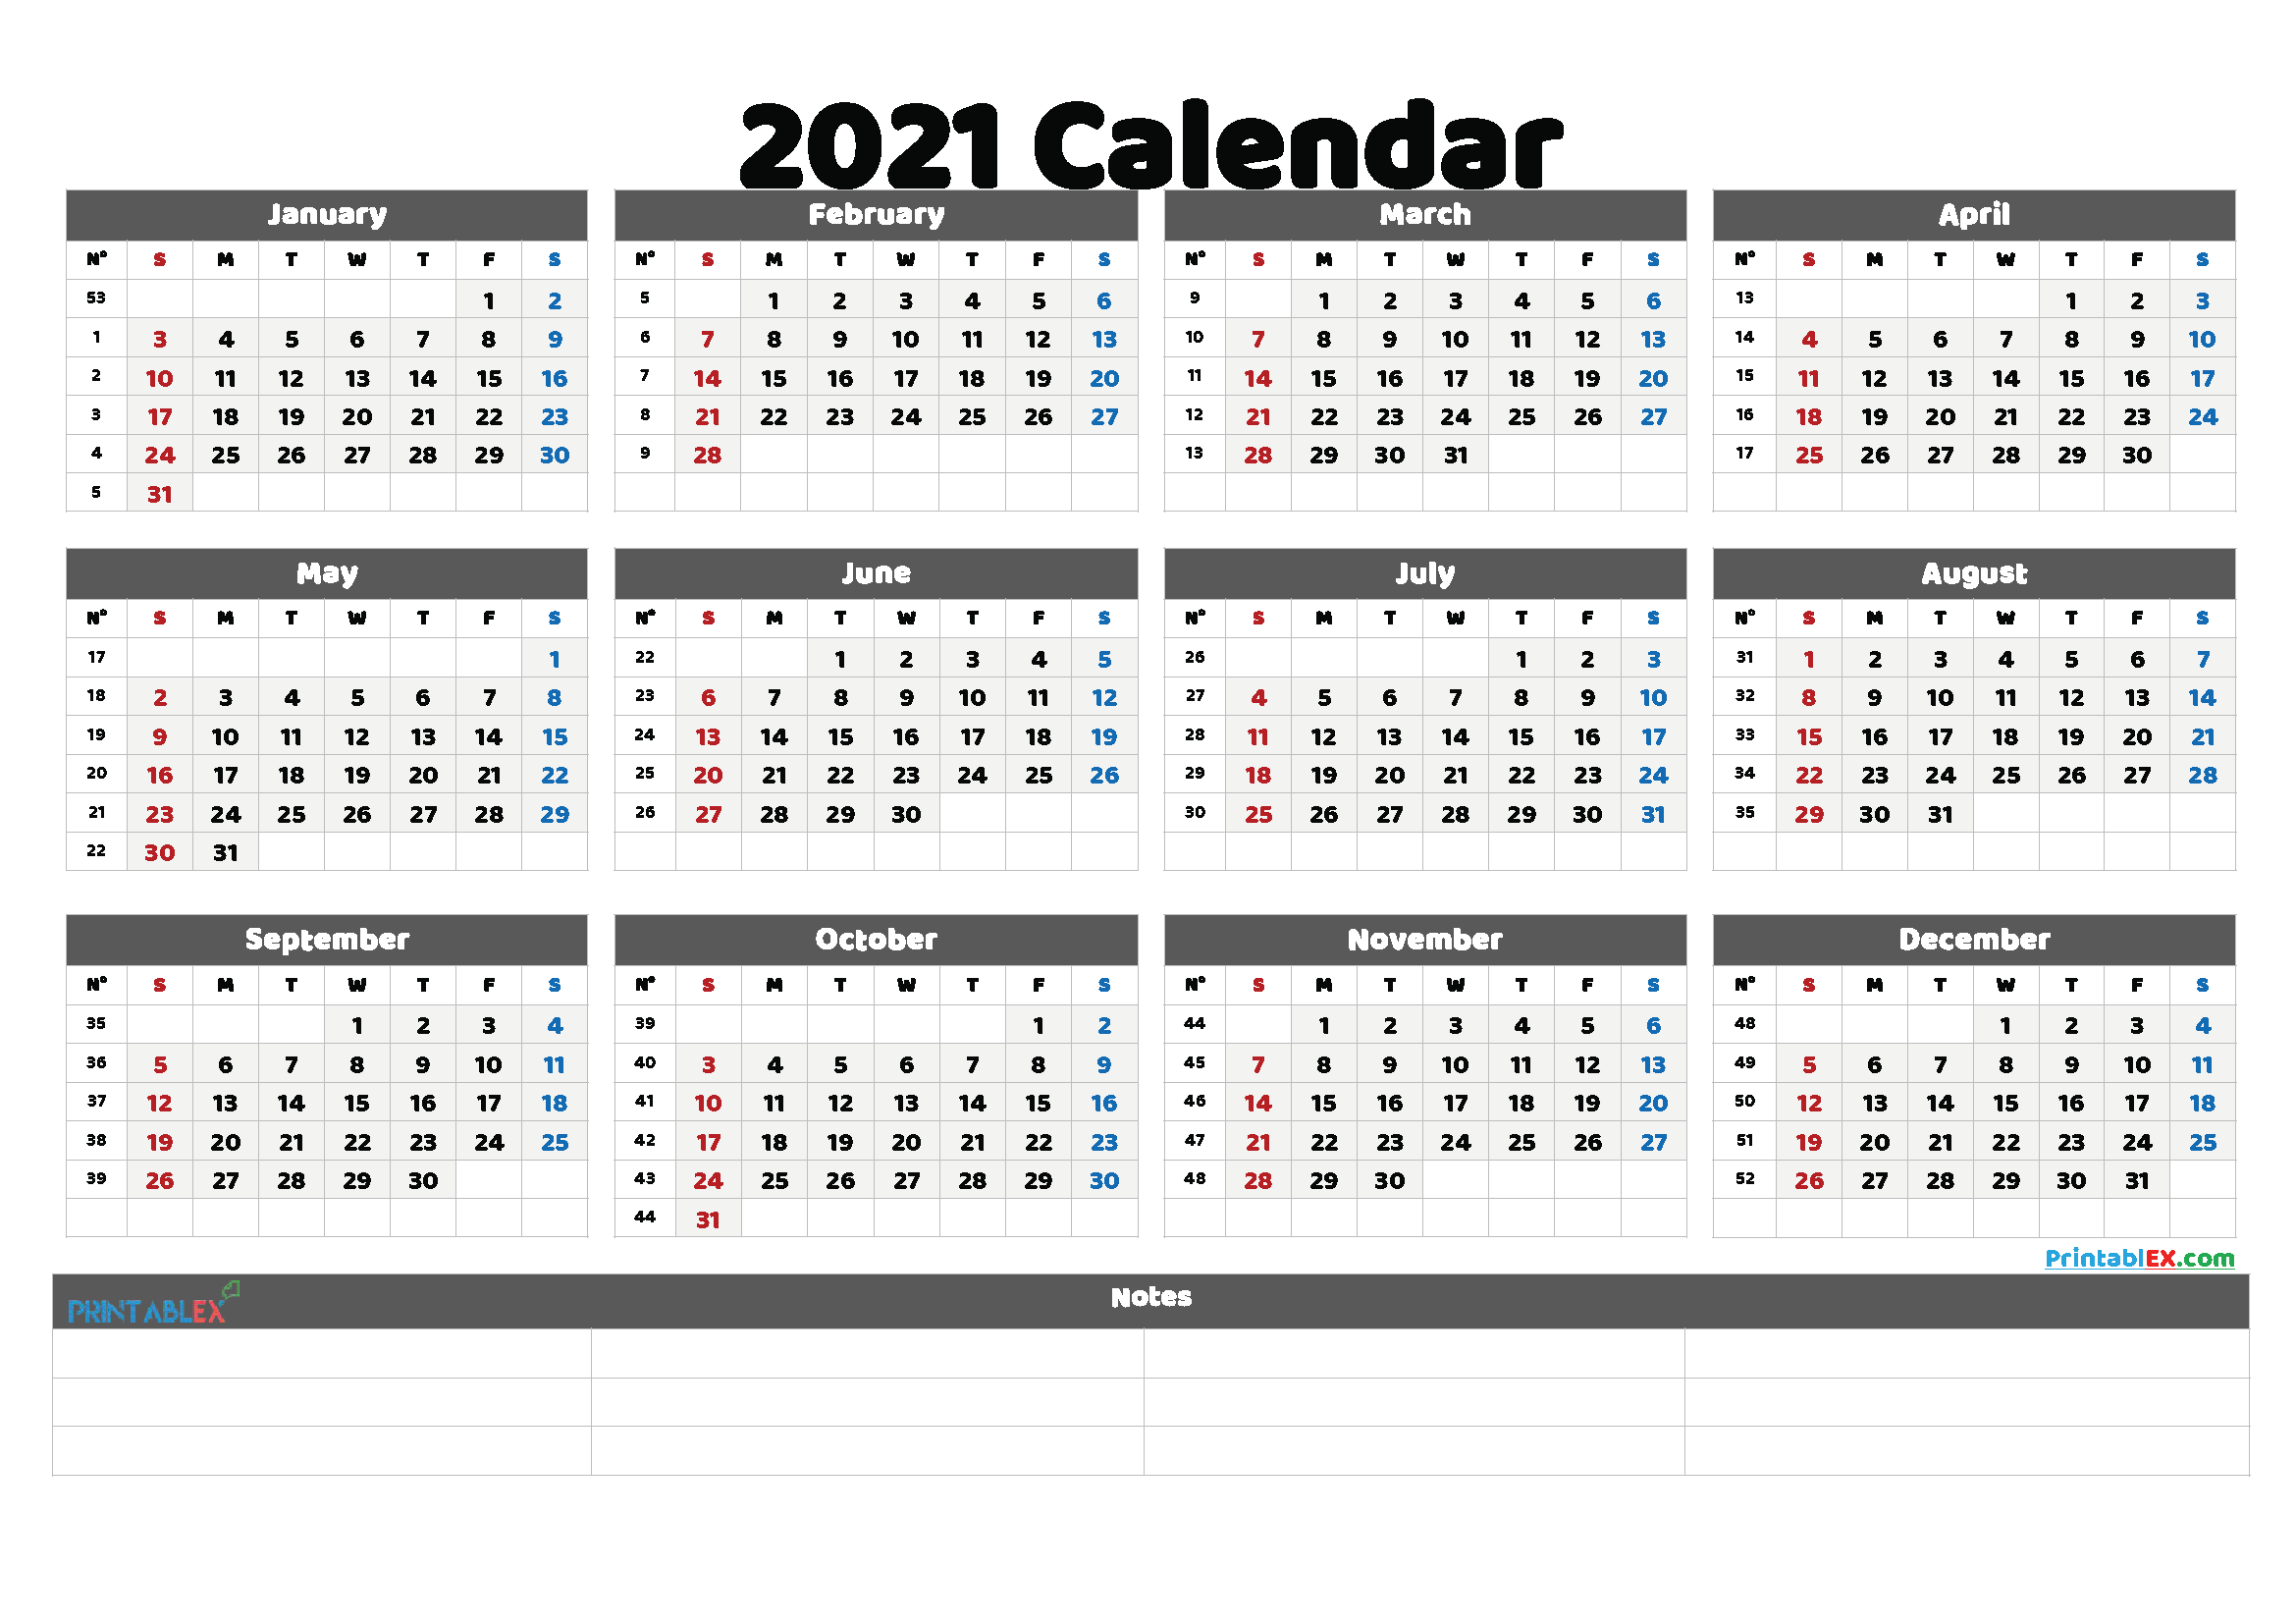 2021 Free Printable Yearly Calendar with Week Numbers (Font: inkfr)